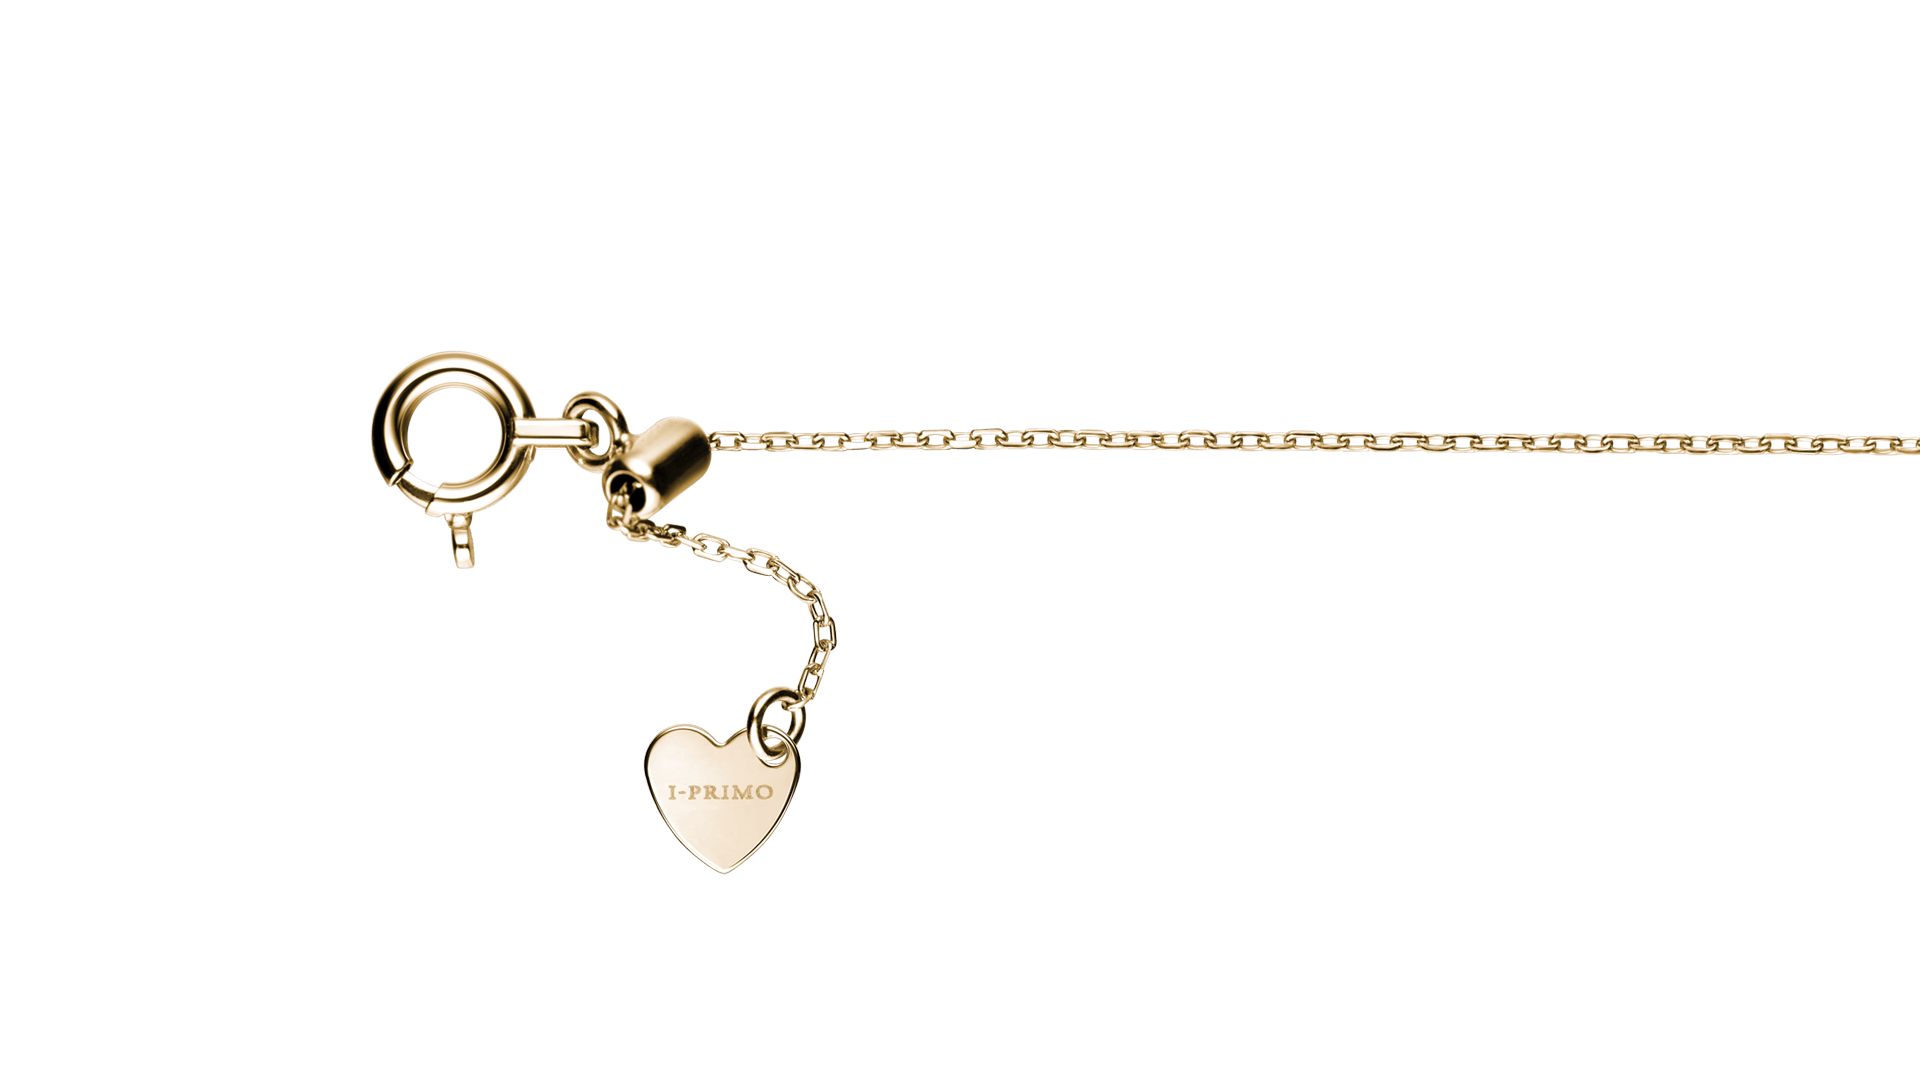 Personal Necklace パーソナルネックレス   アニバーサリージュエリーサムネイル 4